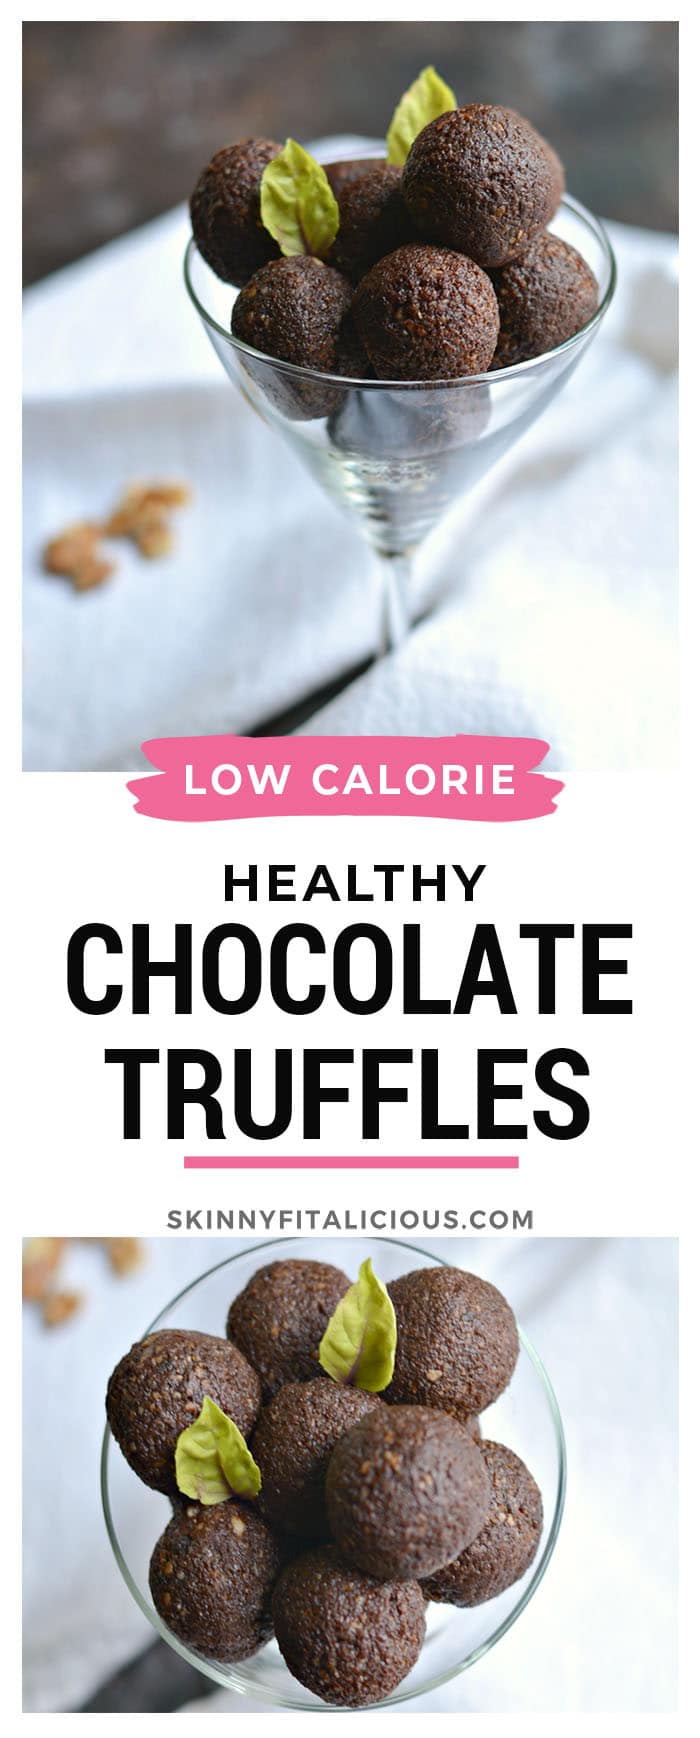 Grain Free Chocolate Walnut Truffles made with almond, walnuts, dates and chocolate these decadent mint no bake snacks melt in your mouth not in your hand!